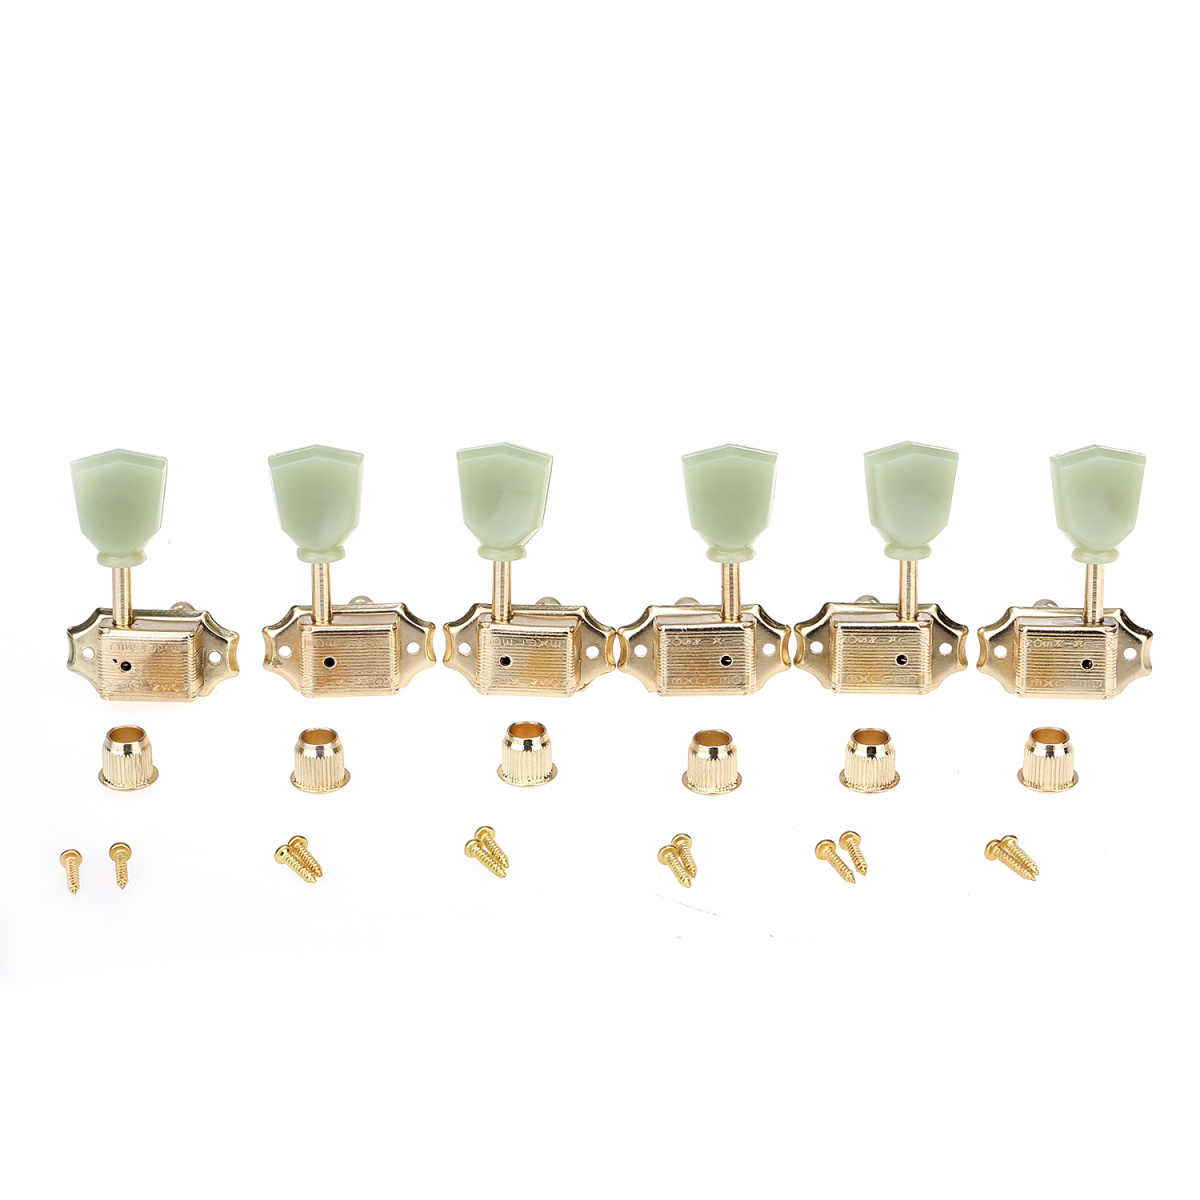 Wilkinson 3R3L Deluxe Vintage Keystone Guitar Tuners Machine Heads Tuning Pegs Keys Set for Gibson or Epiphone Les Paul, Gold